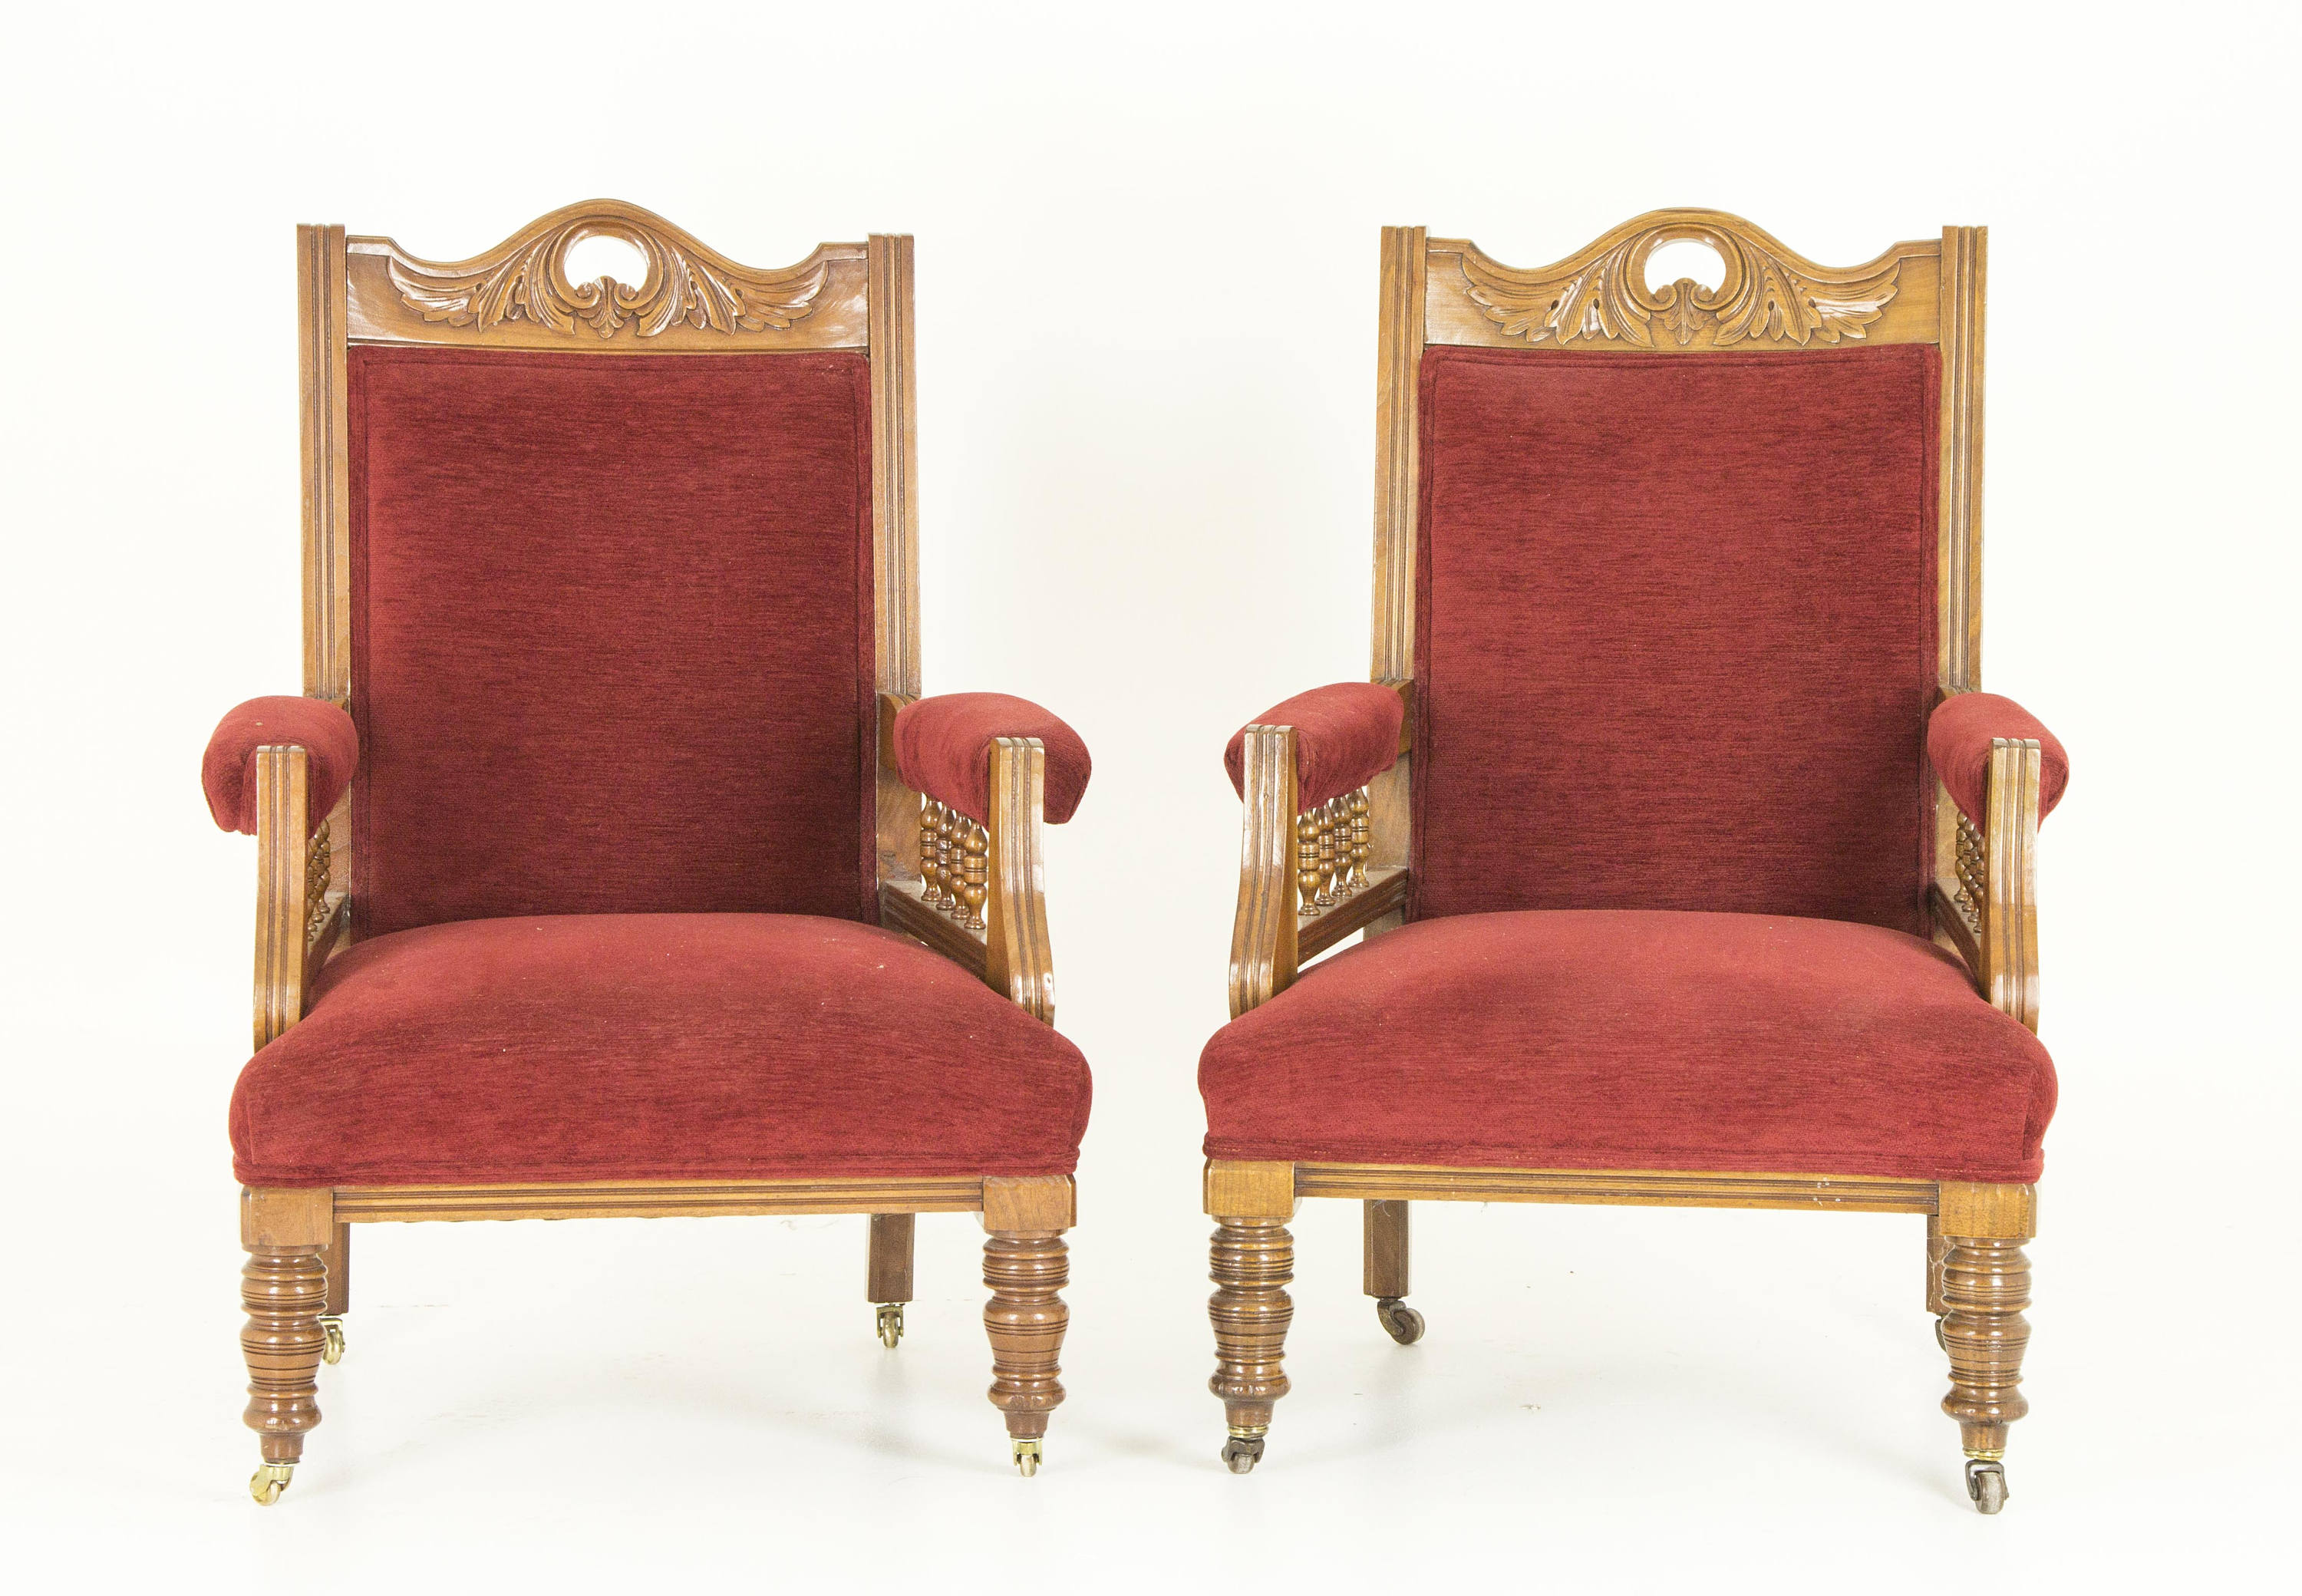 Antique Parlor Chairs Antique Chairs Parlor Chairs Upholstered Arm Chairs Walnut Victorian Scotland 1890 B700 Reduced